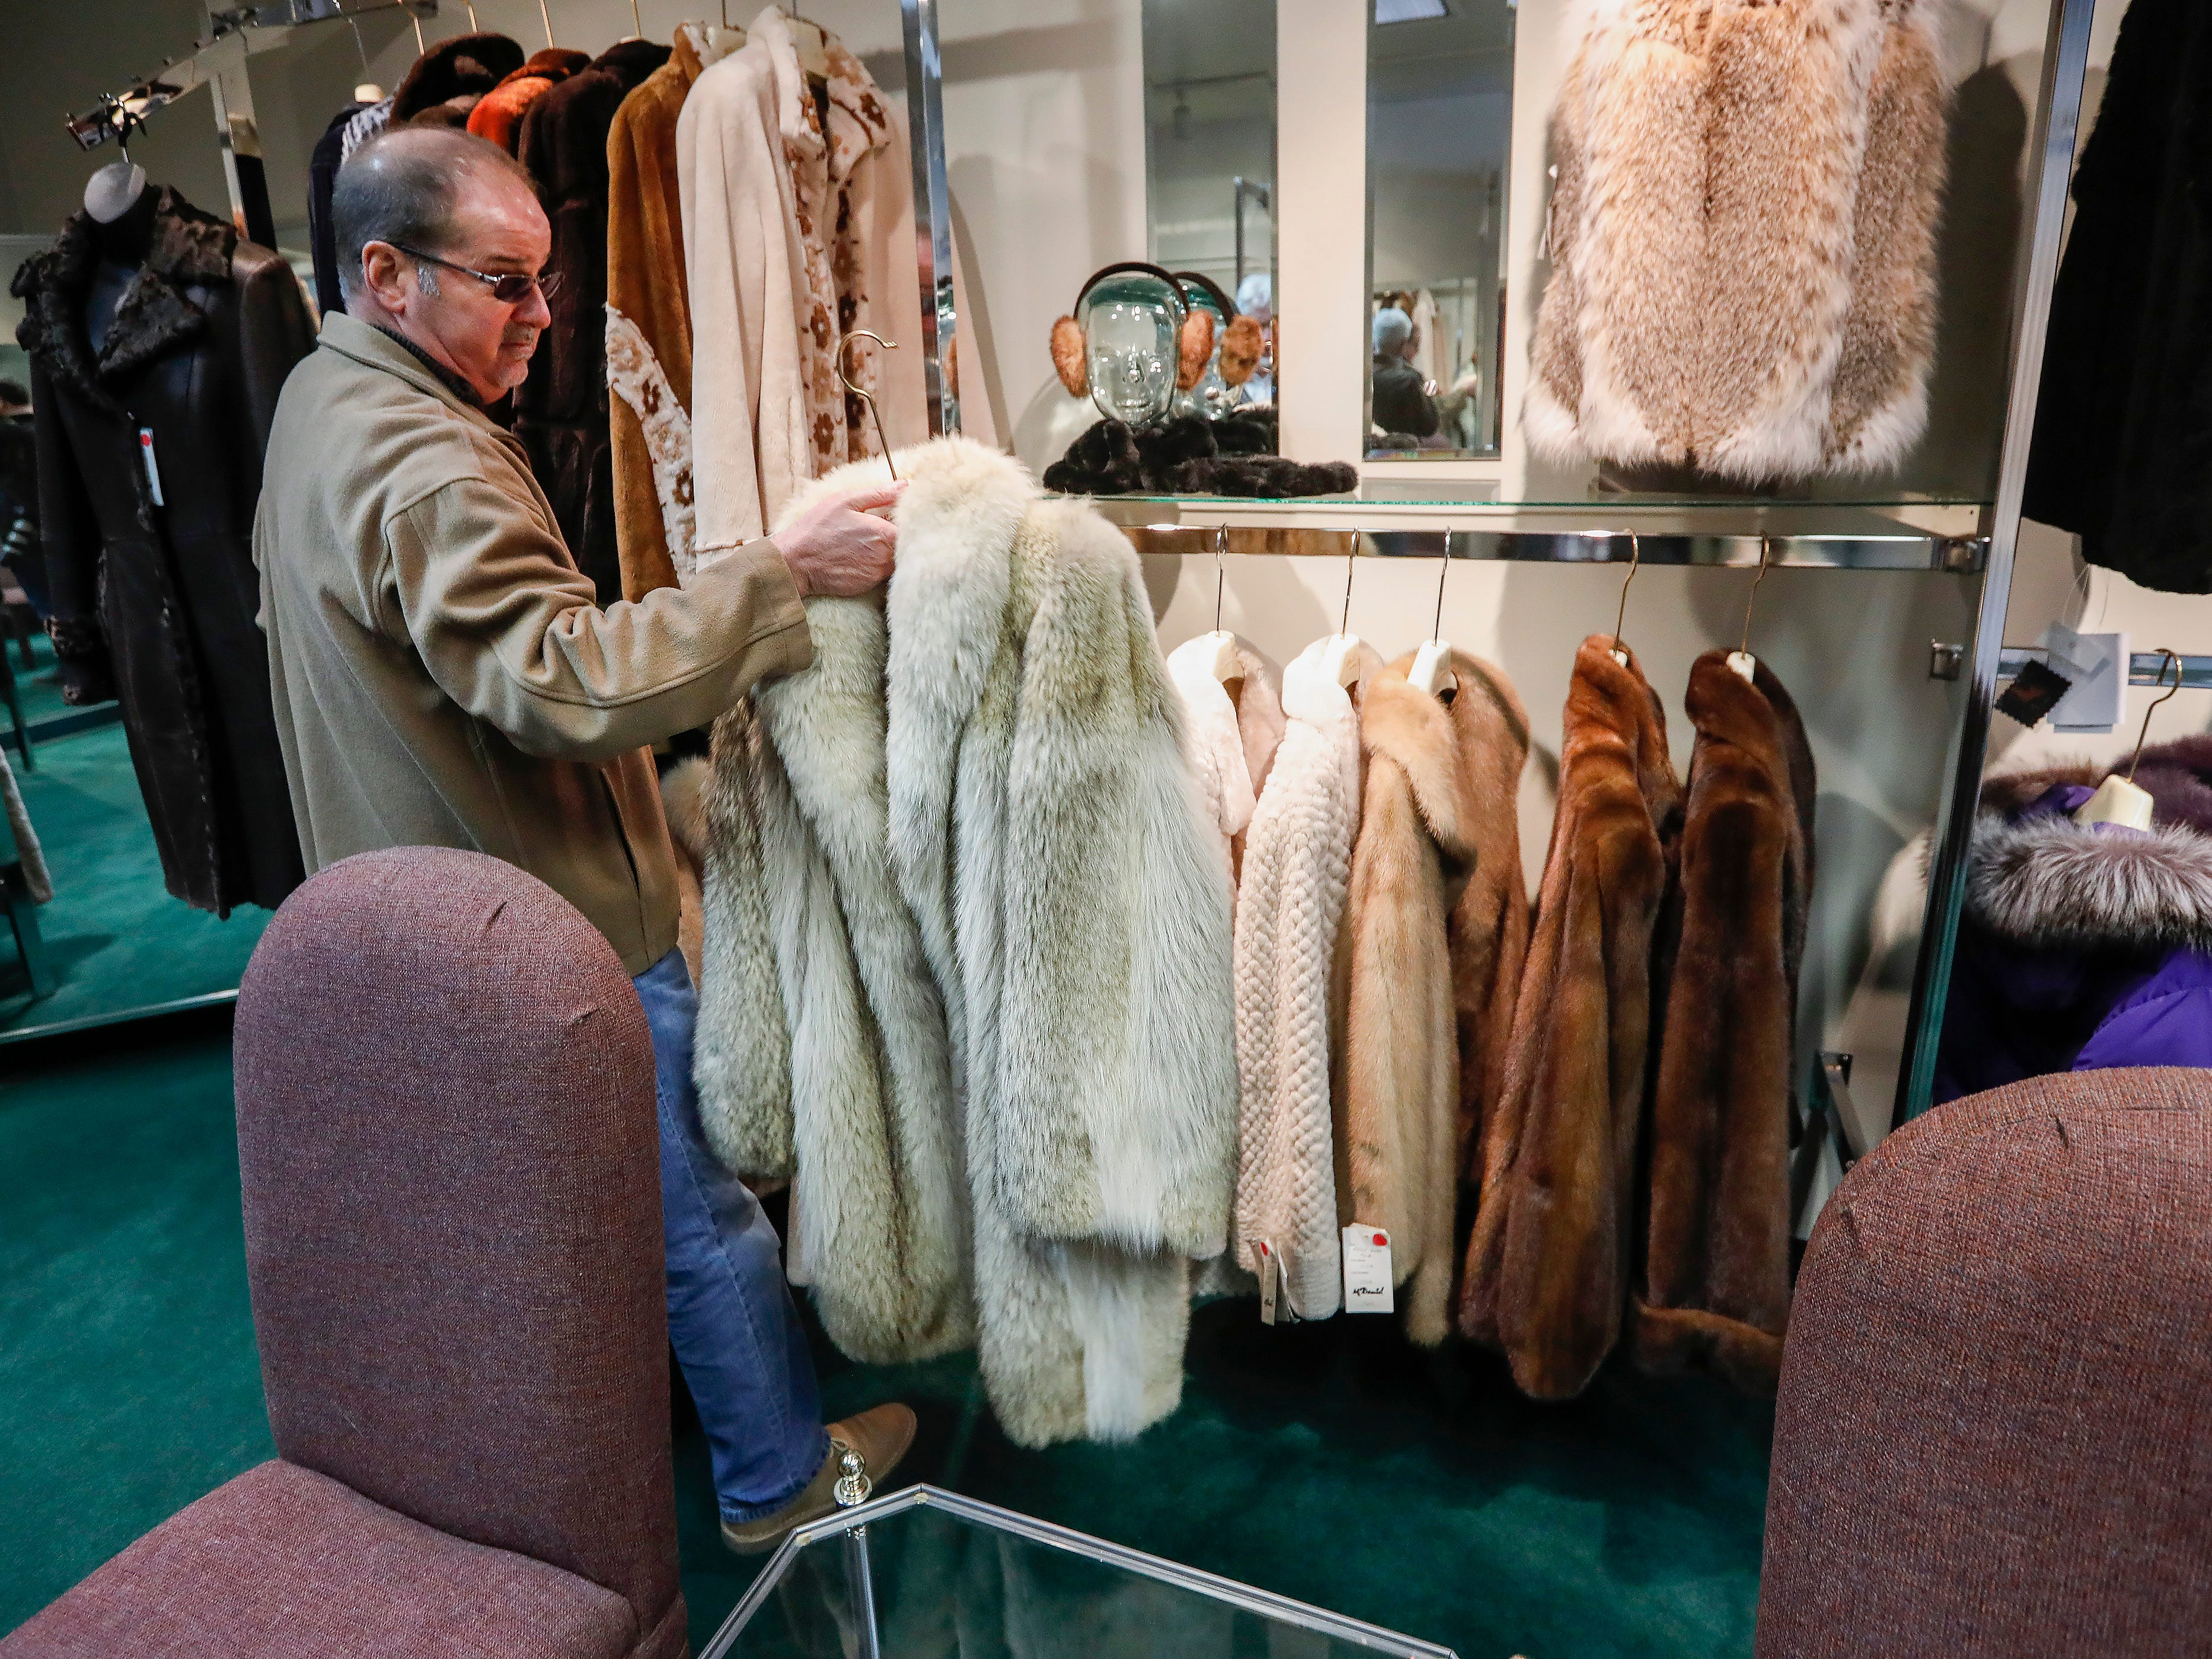 Jeff Latimer, owner of McDaniel Furs, shows off a jacket that he sells at his store which is located at 901 S. Glenstone Ave.